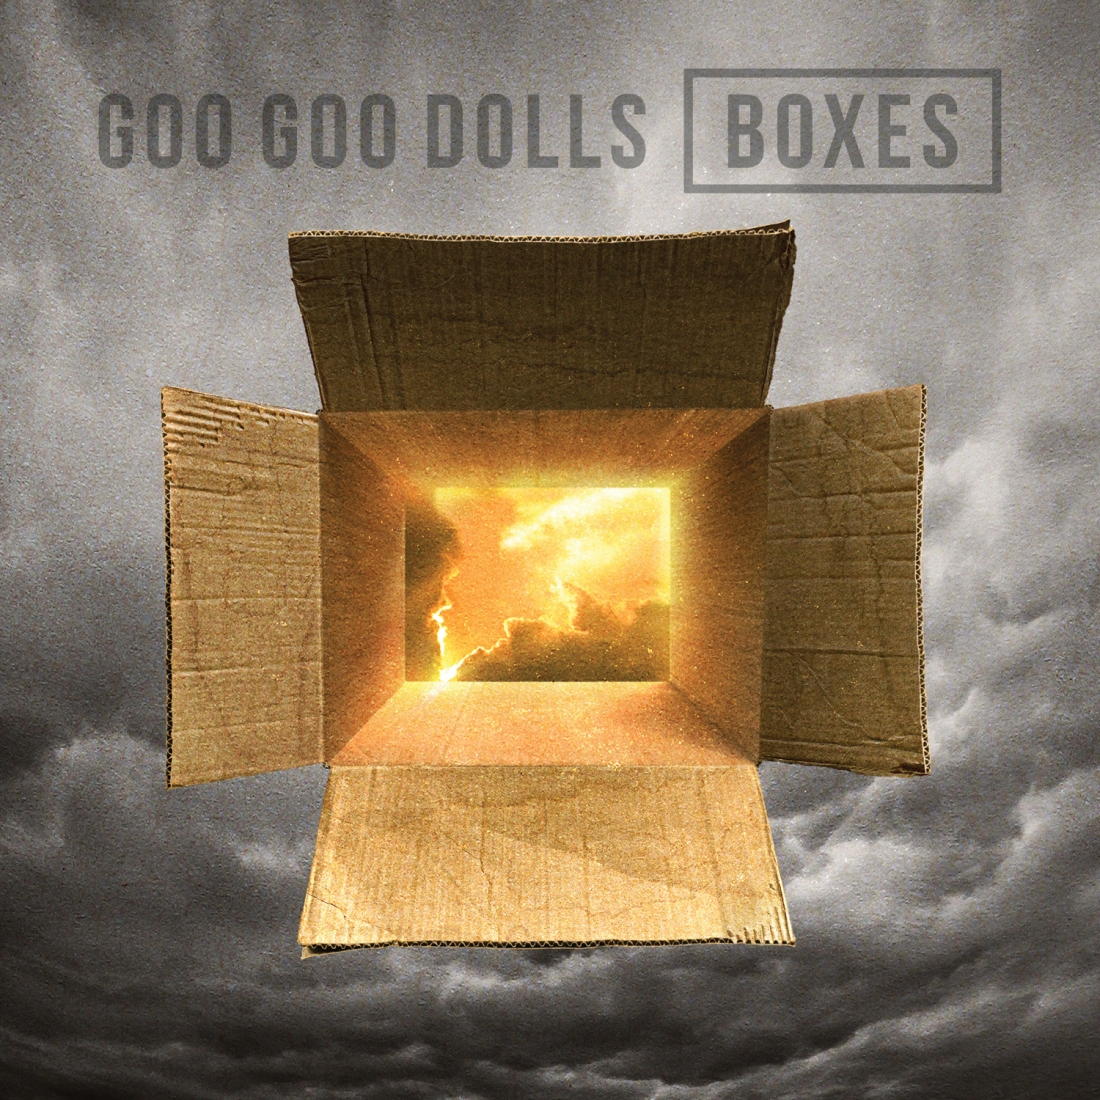 boxes-album-art-extralarge_1460039706805